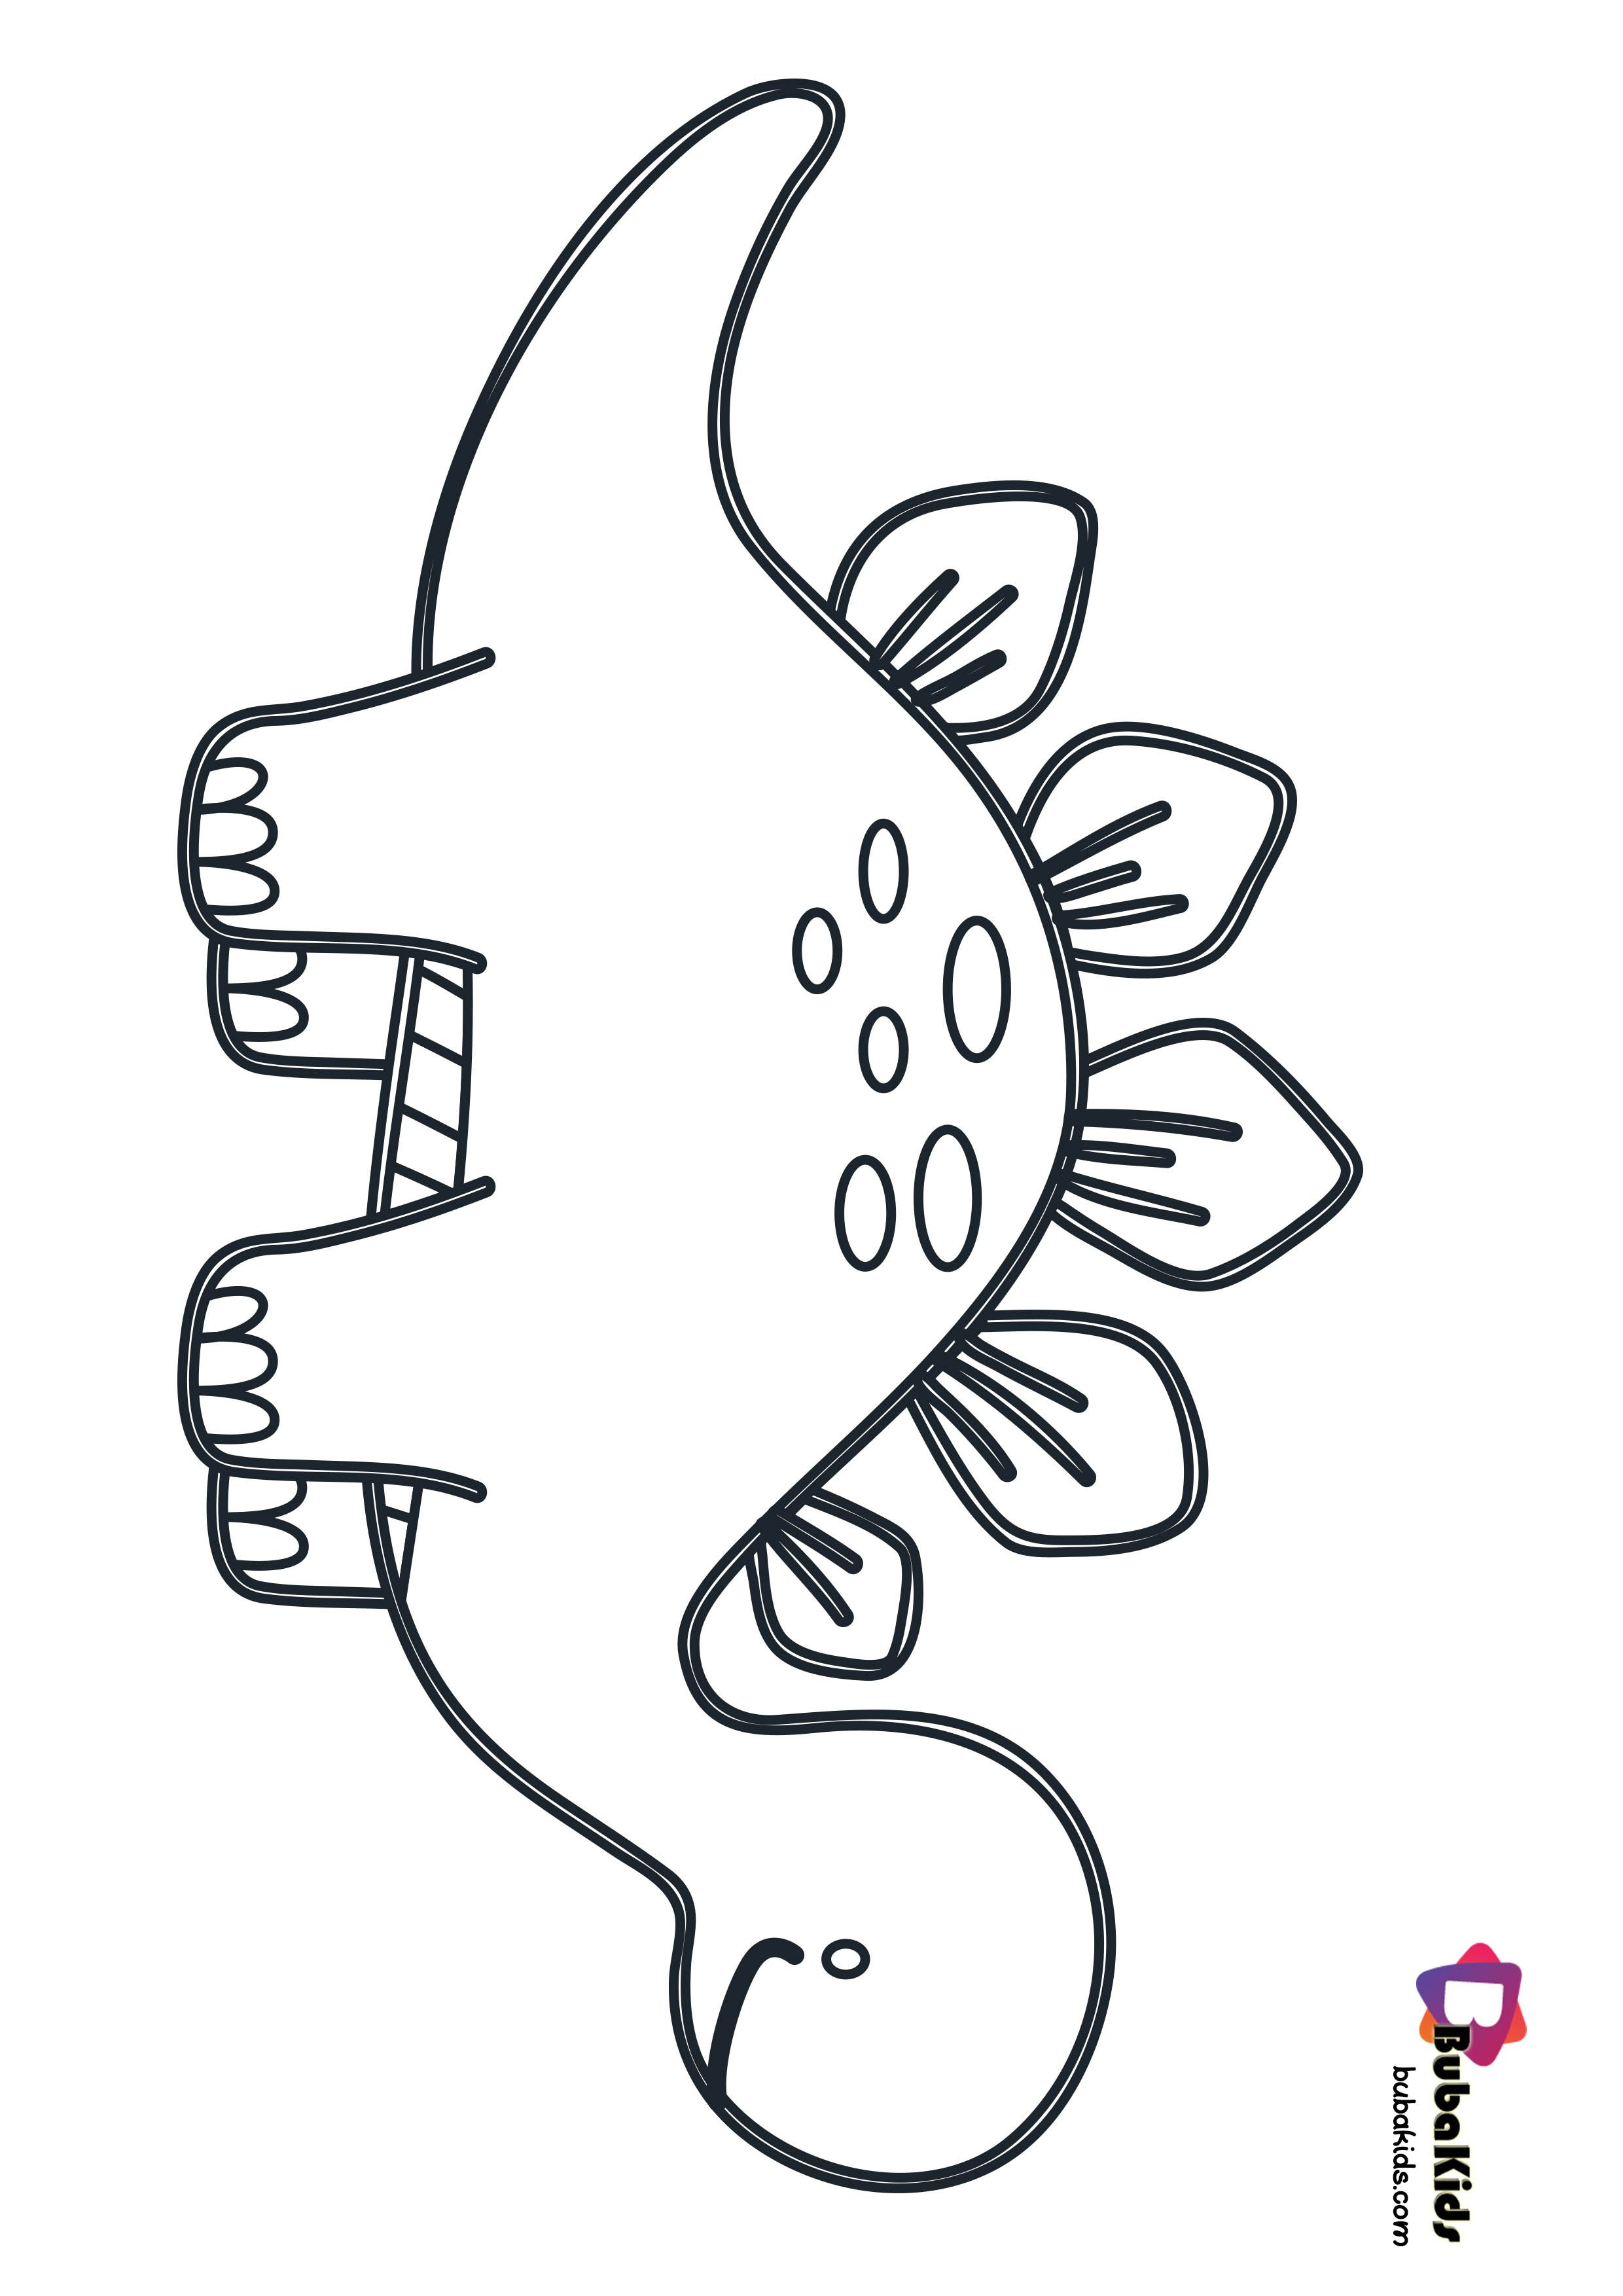 Cute Baby Dinosaurs Coloring Page For Kids Dinosaurscoloringpage Dinosaurs Coloring Pages Dinosaur Coloring Pages Cute Coloring Pages Dinosaur Coloring